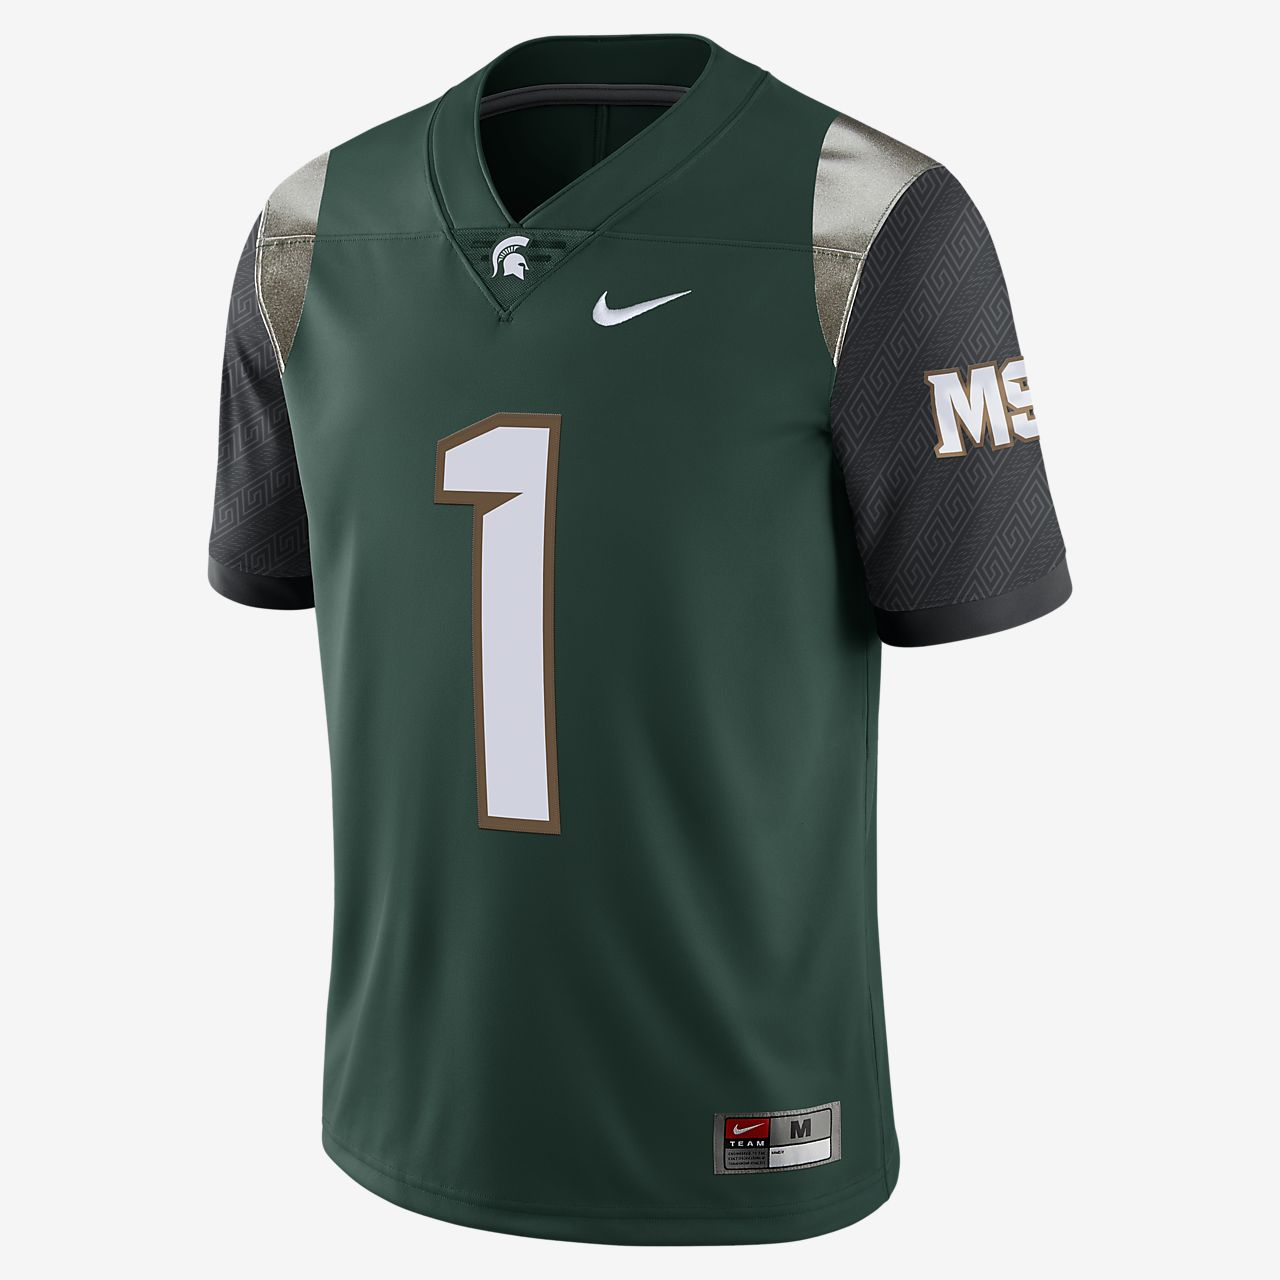 Nike College Limited (Michigan State) Men's Football Jersey